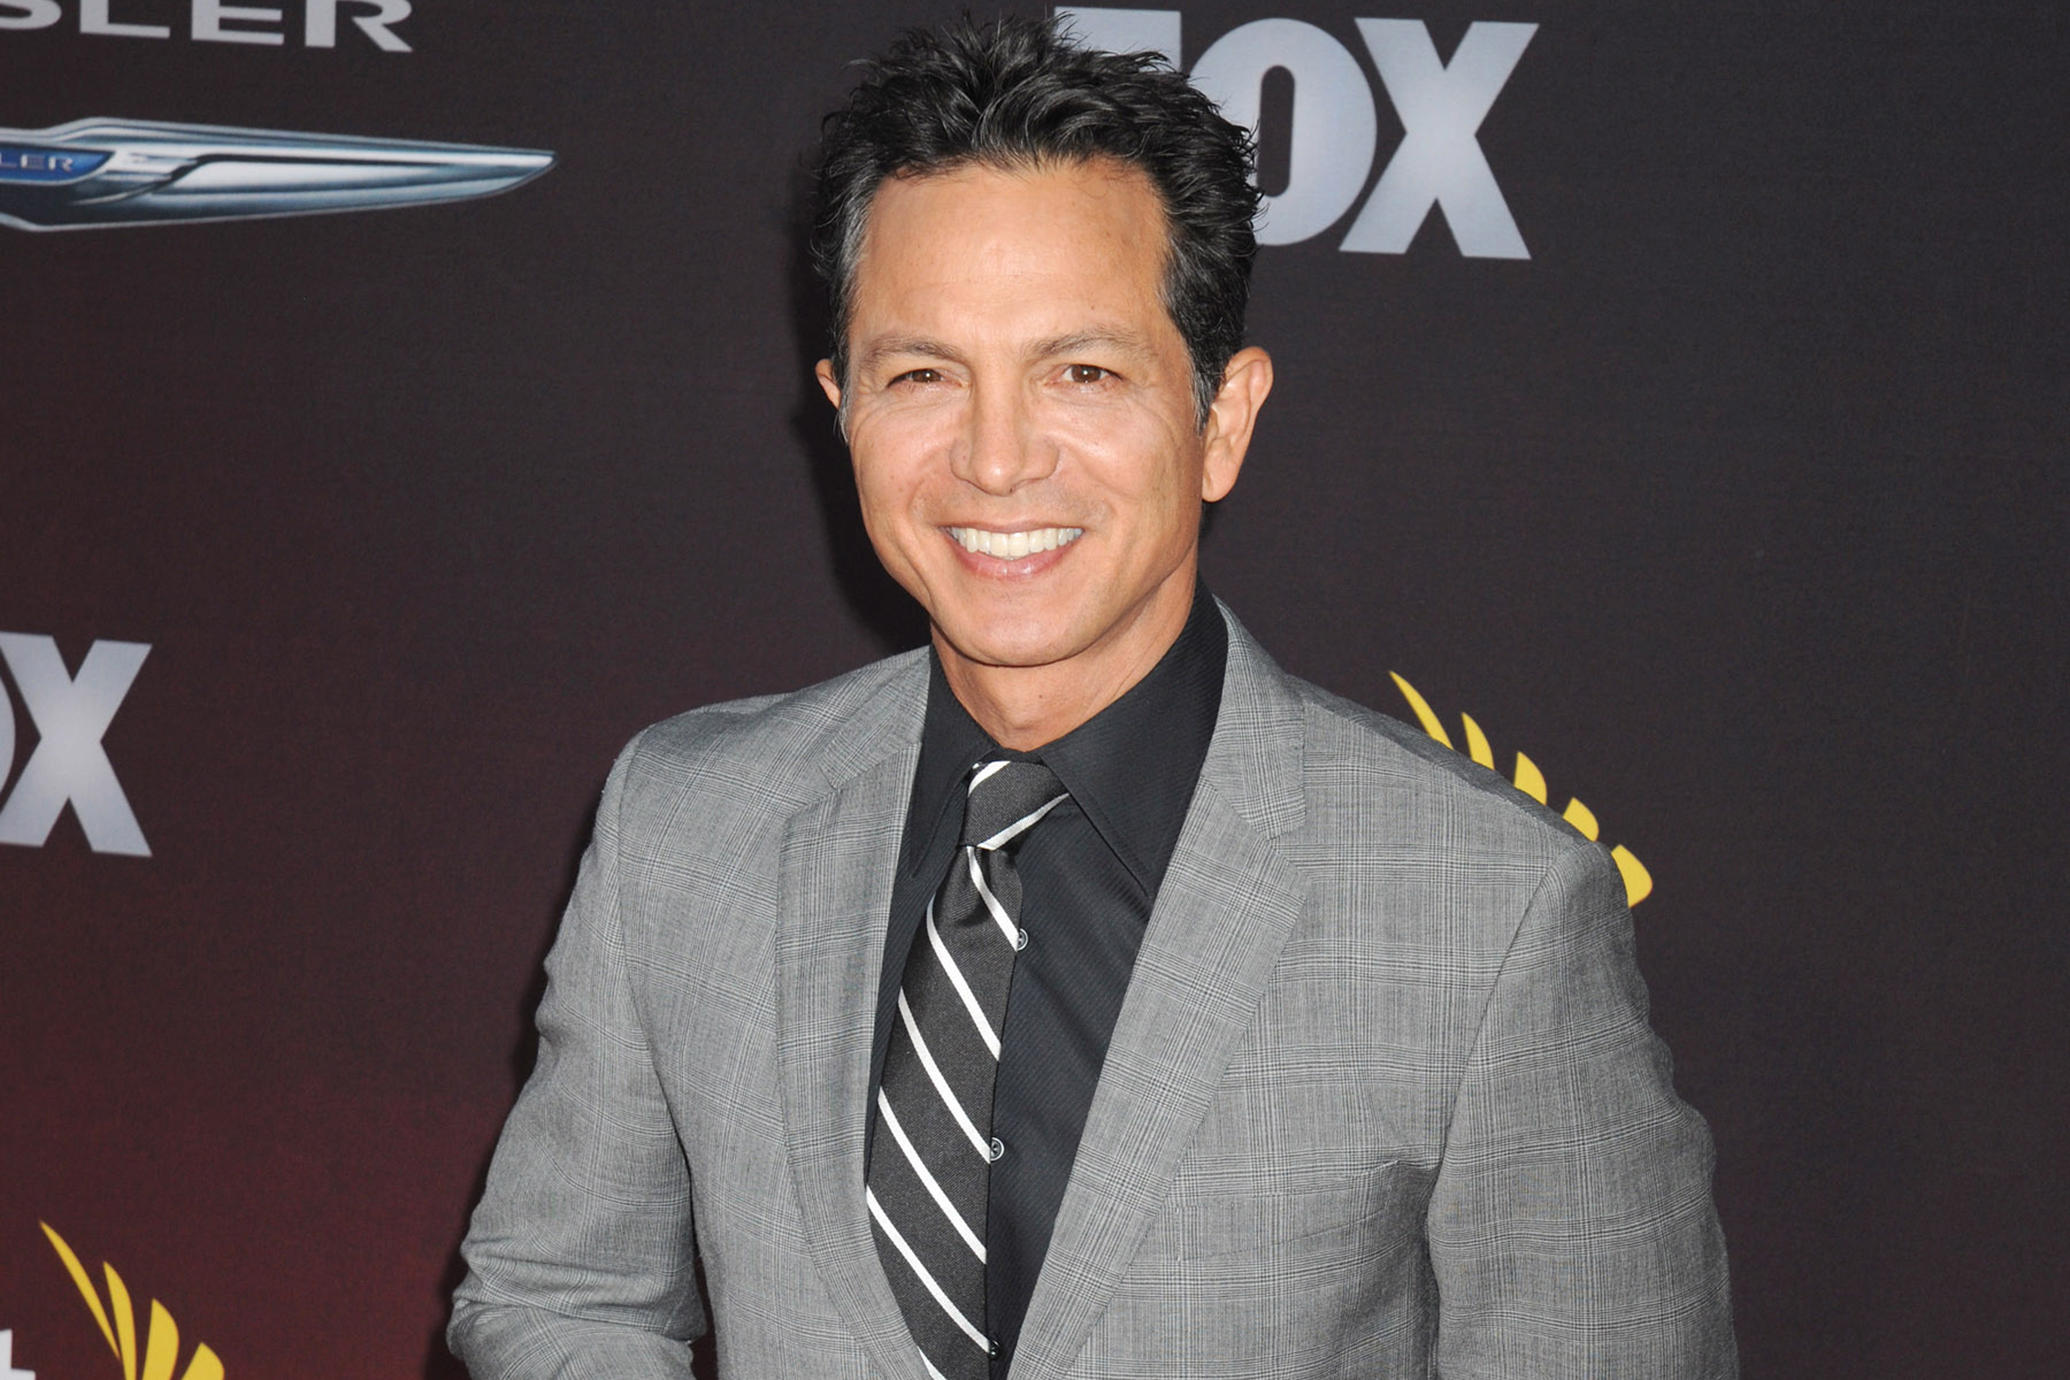 Benjamin Bratt Wiki: Net Worth, Age & Facts About Former Law & Order Star